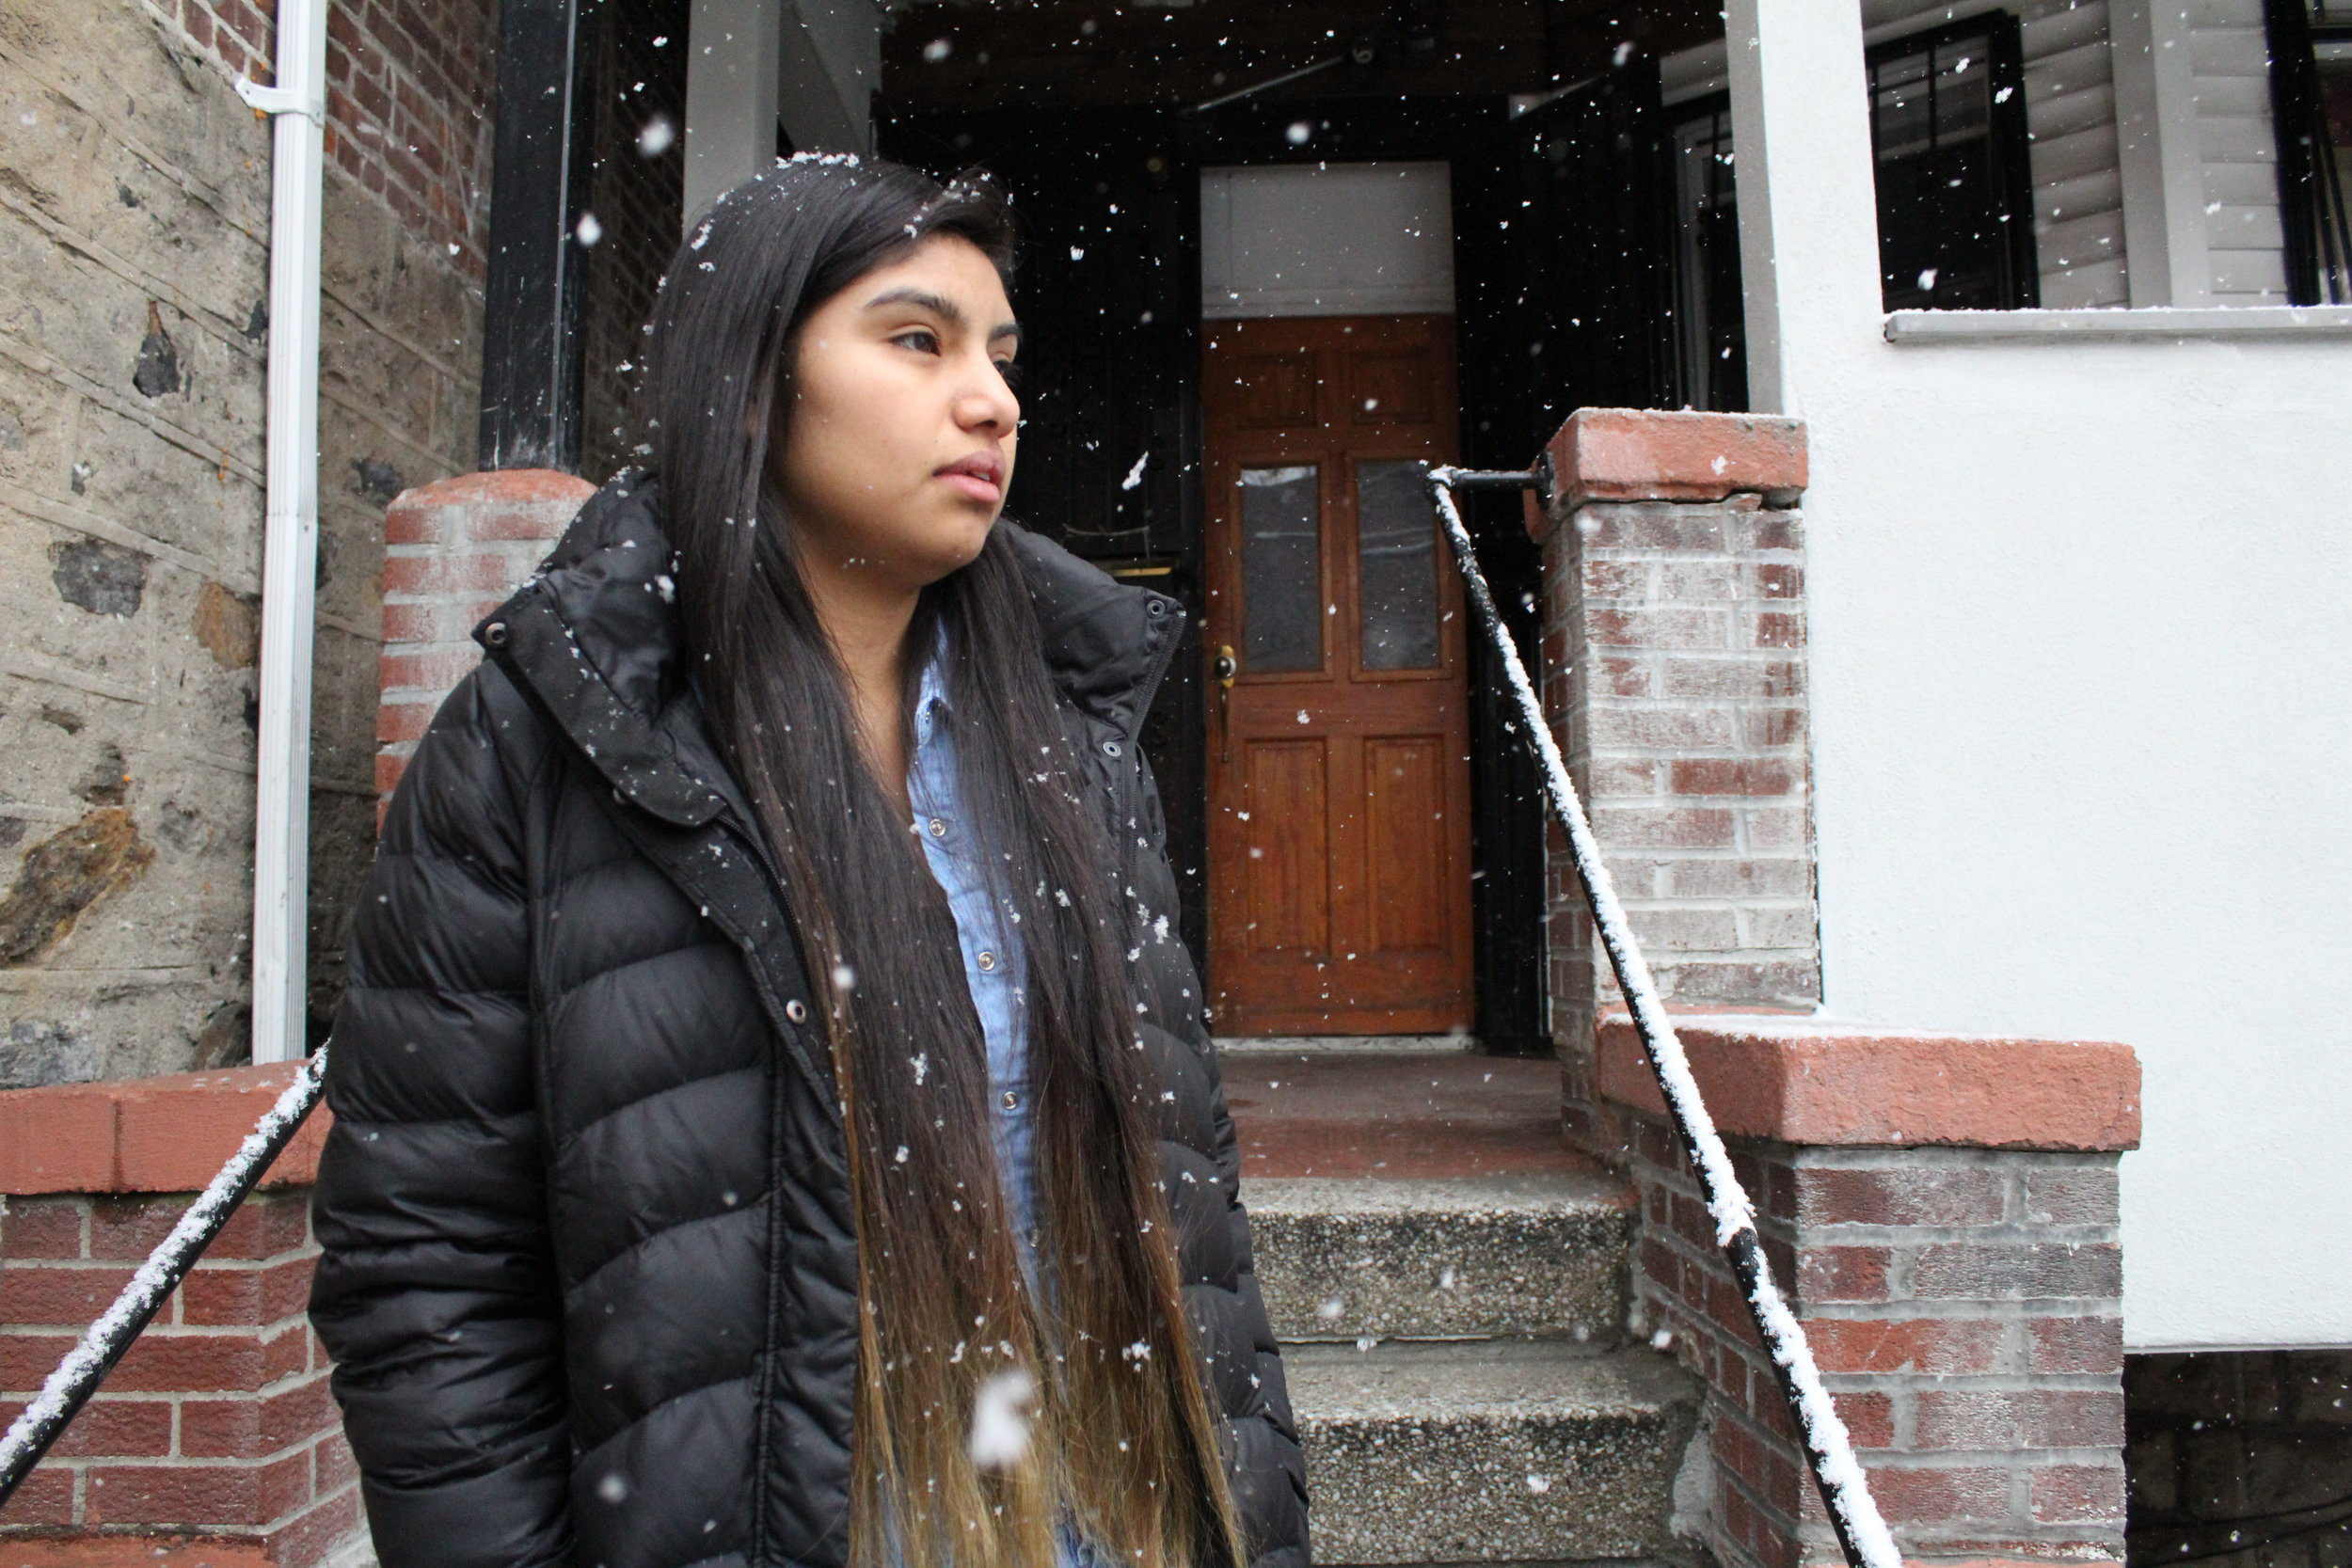 In a snowy day in December, Anayeli, 19, a South Bronx United alumna, contemplated about the challenges she has confronted since her arrival in the United States in 2012.Kervy Robles for After the Final Whistle.